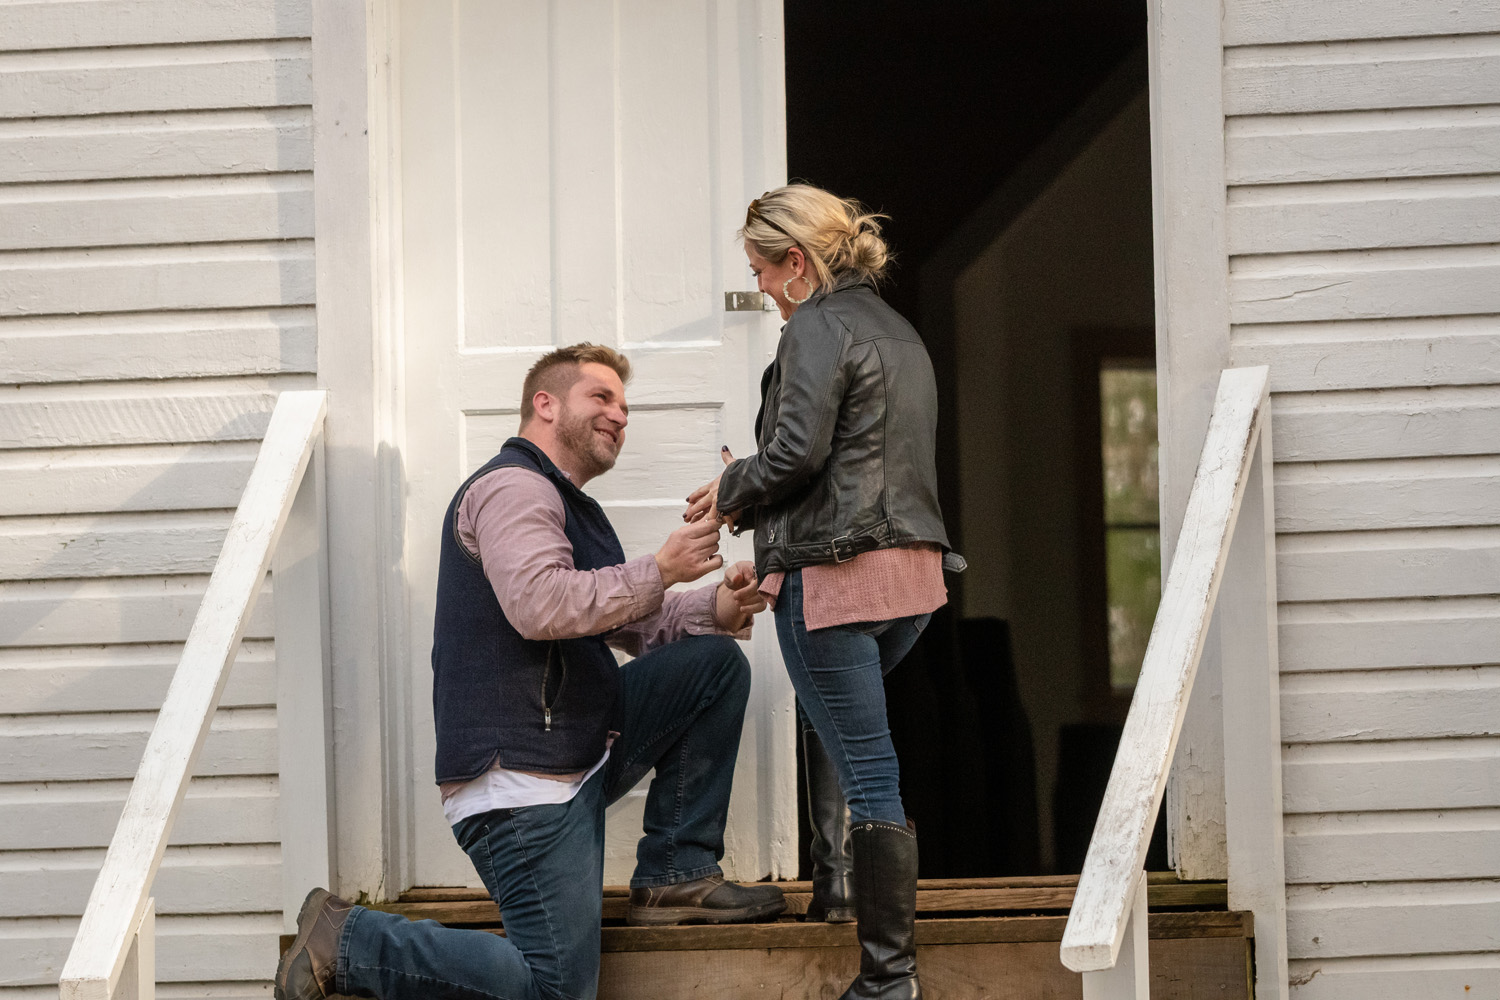 Impromptu proposal on the steps of a church in Cade's Cove.